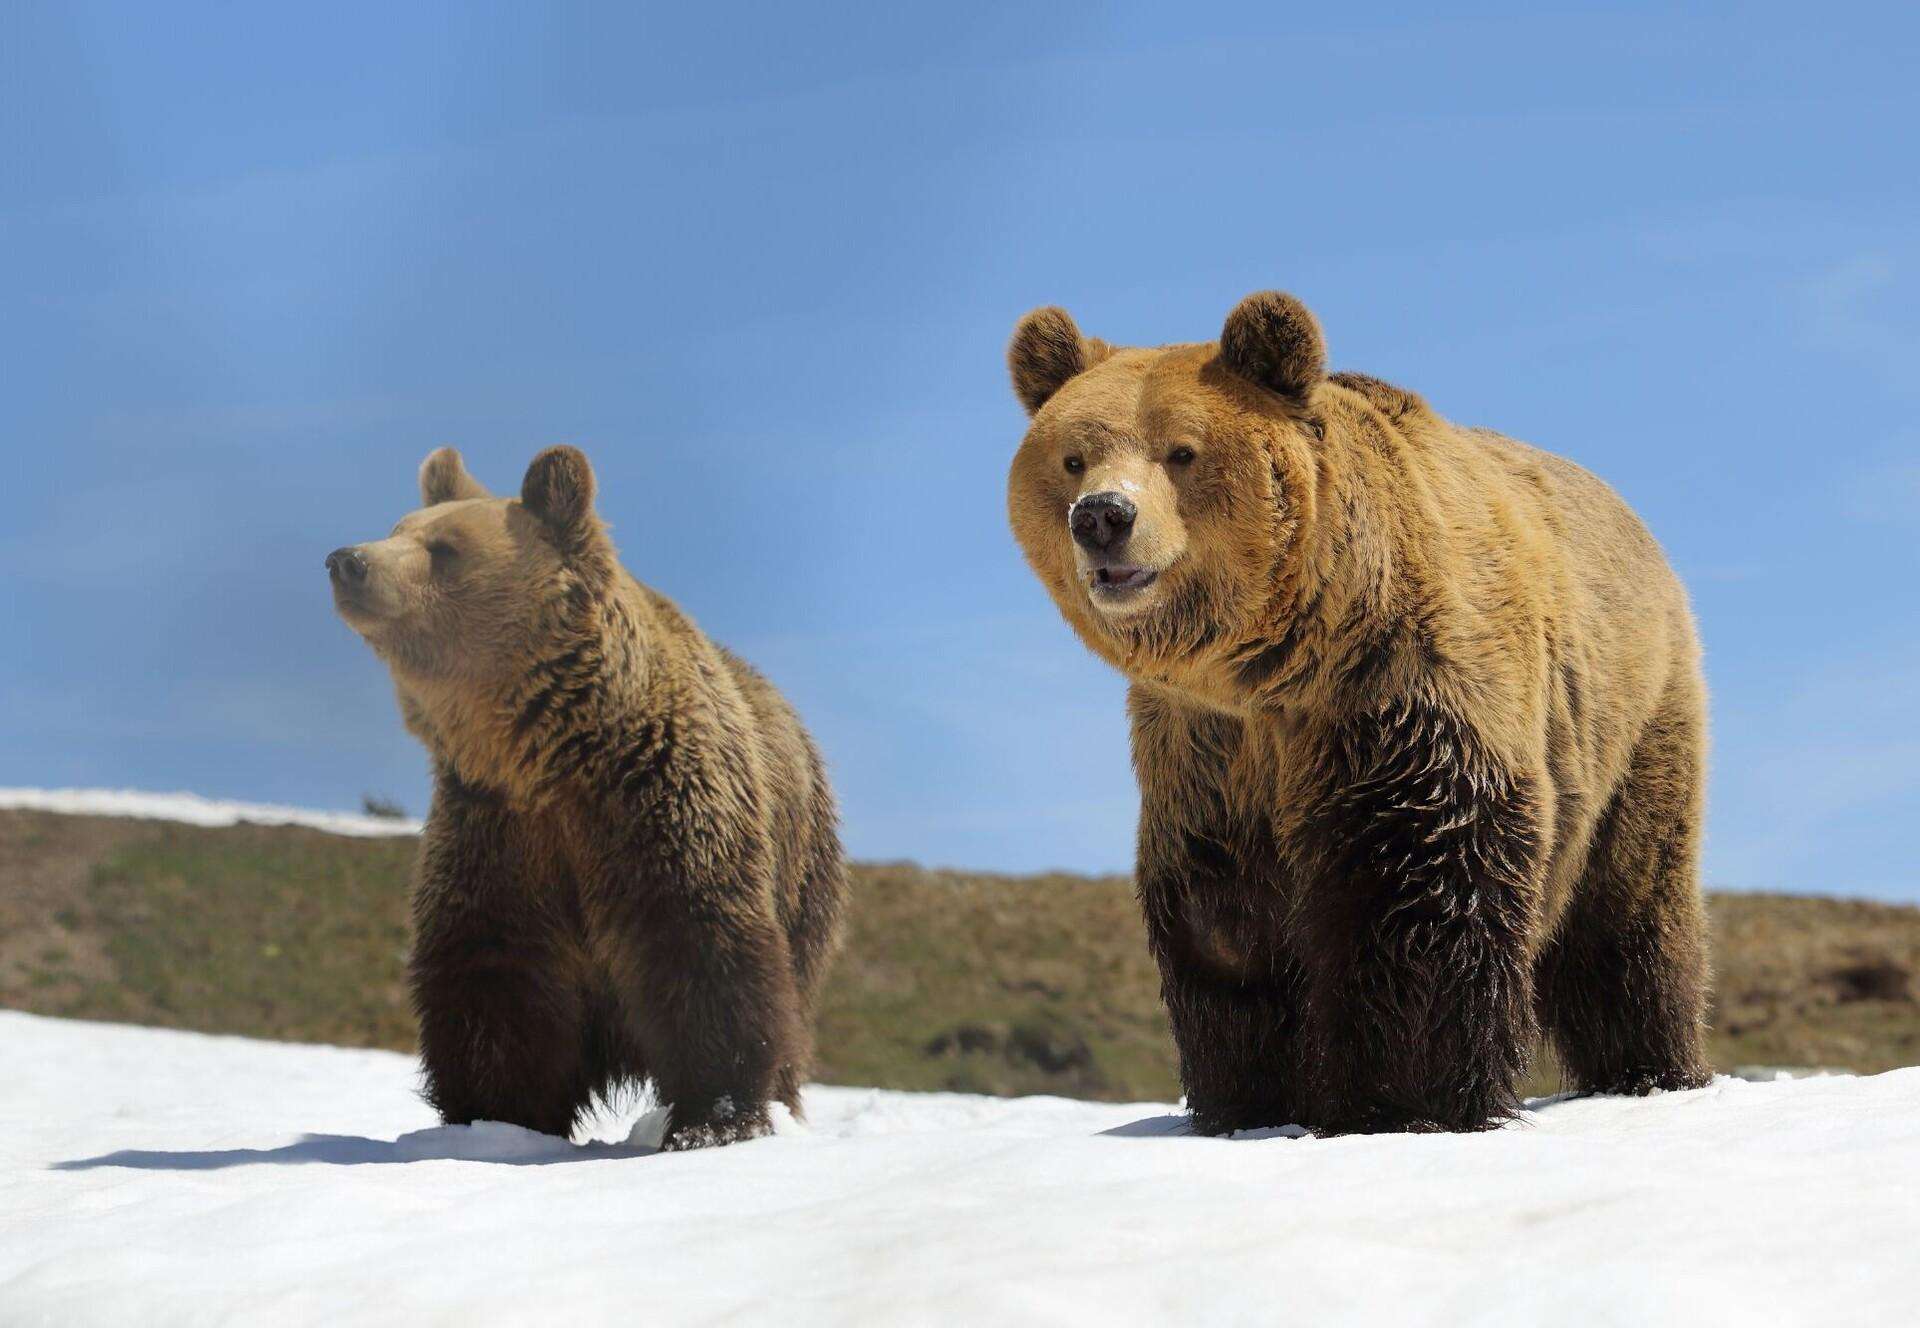 Brown bears Amelia and Miemo in the snow